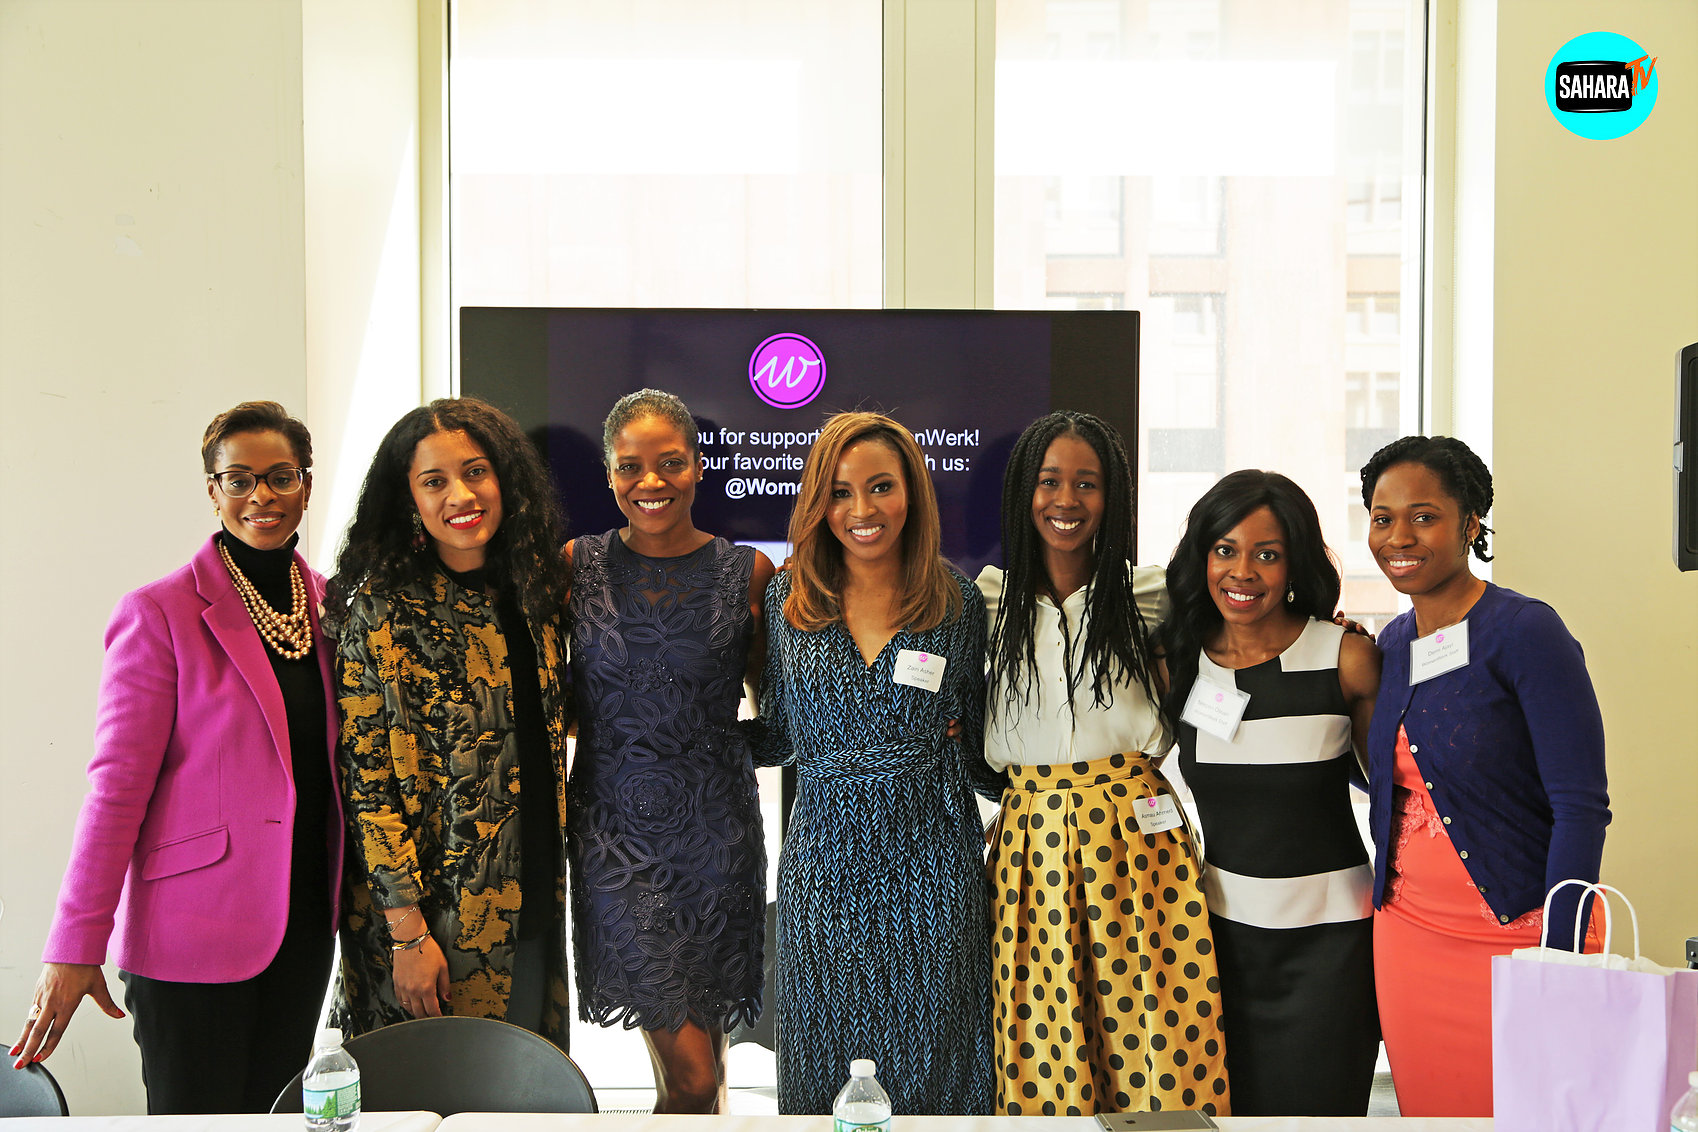 Vanessa De Luca, Editor-In-Chief at Essence Magazine Zain Asher, CNN International Correspondent Karen Boykin-Towns, Vice President of Corporate Affairs at Pfizer Asmau Ahmed, Founder & CEO of Plum Perfect De'Ara Balenger, Former Director of Engagement at Hillary for America Ghylian Bell (Moderator), Founder of Urban Yoga Foundation